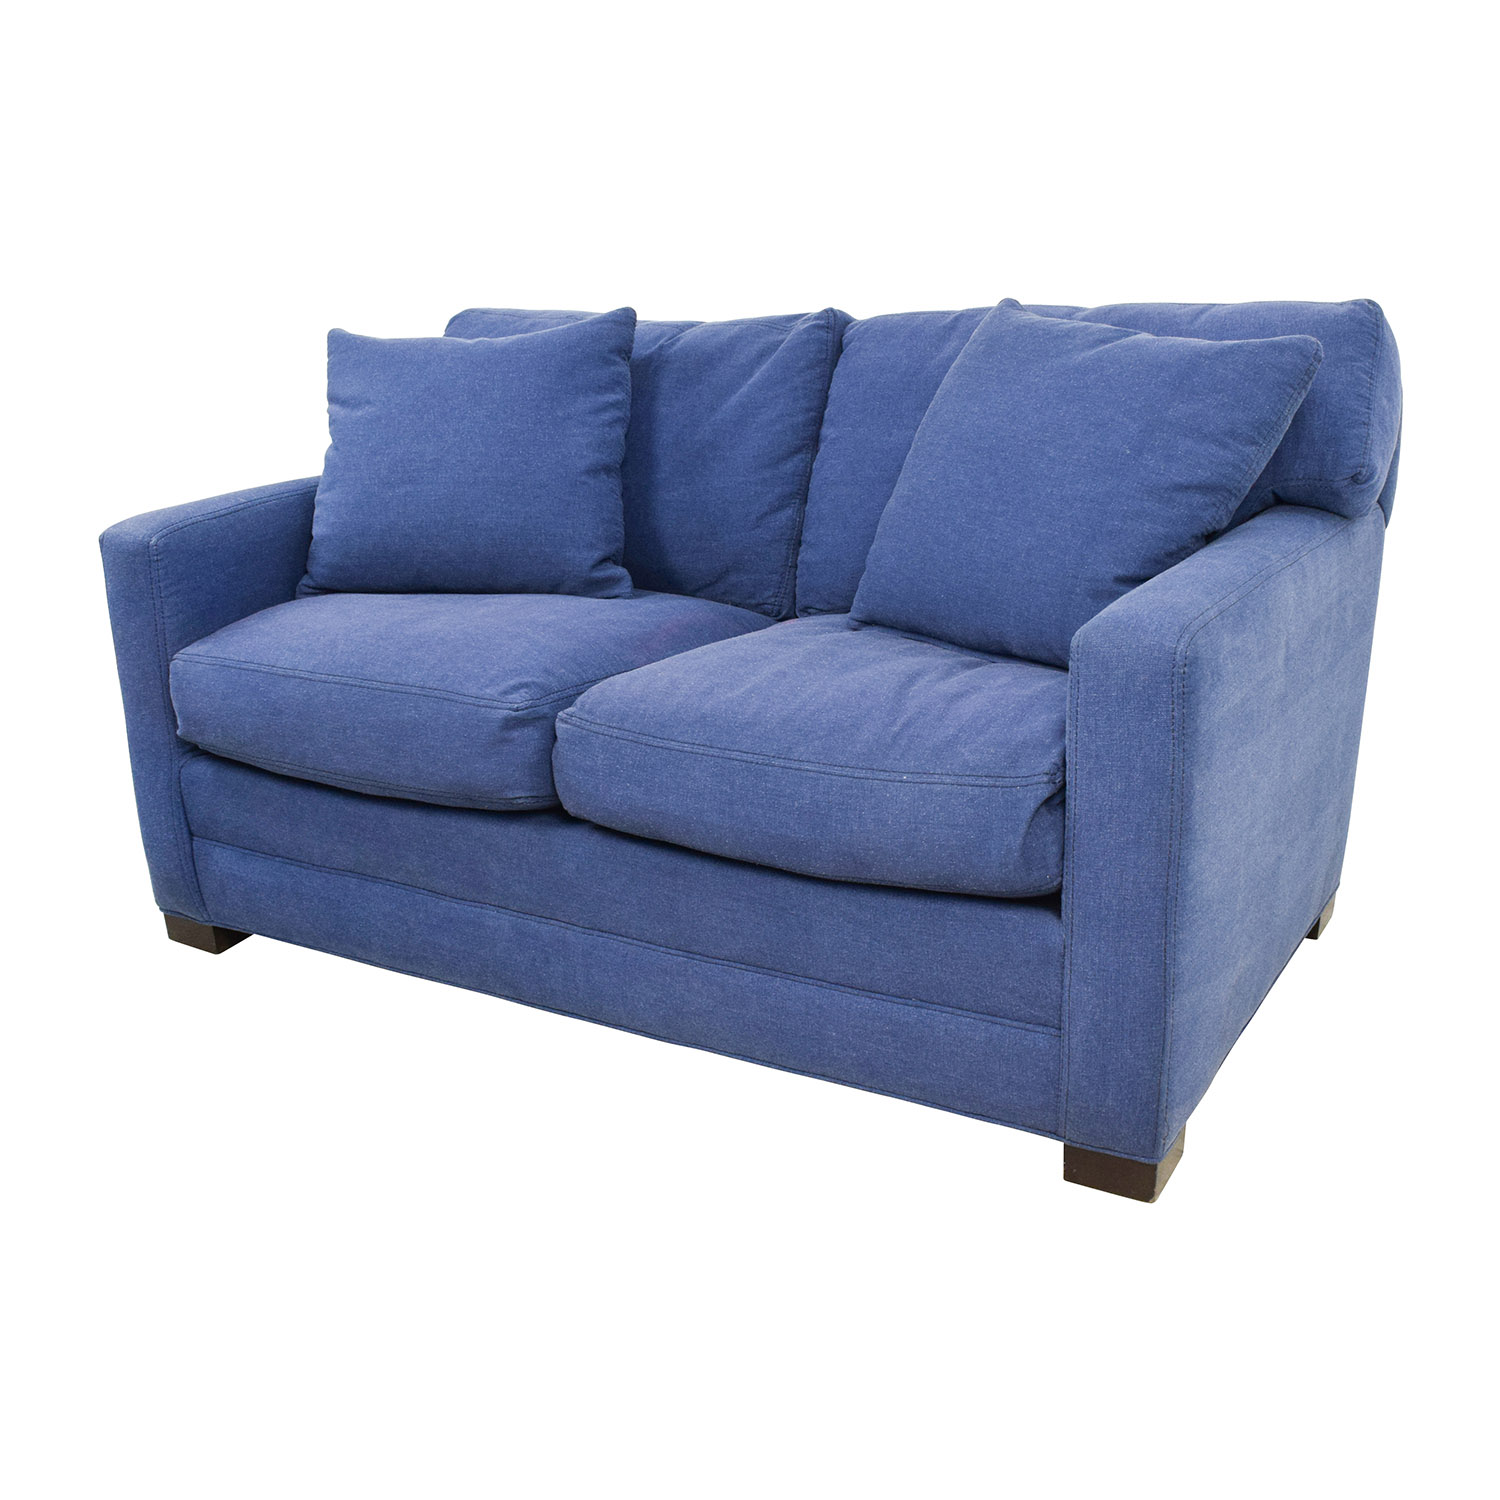 79% OFF Lee Industries Lee Industries Denim Blue Loveseat Sofas